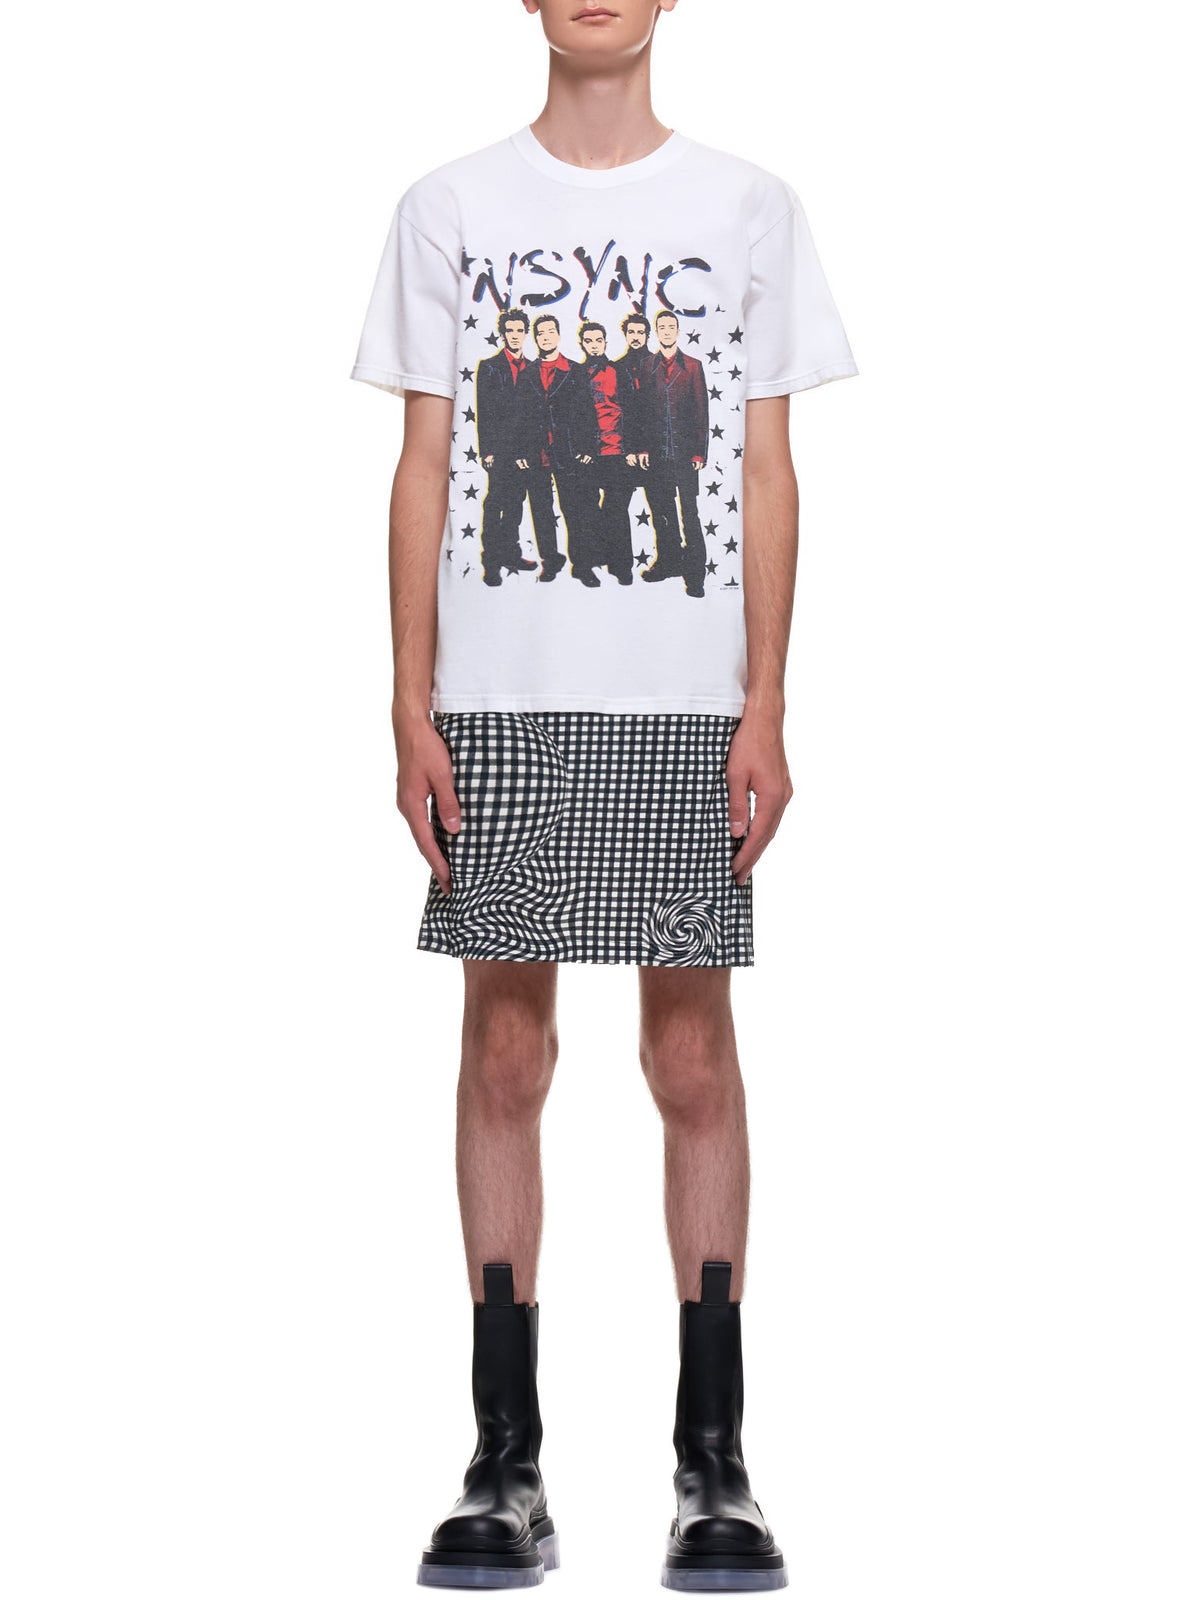 Distorted Gingham Vintage Boyband T-Shirt (EP2-NA-WHT-RED-NYSNC)